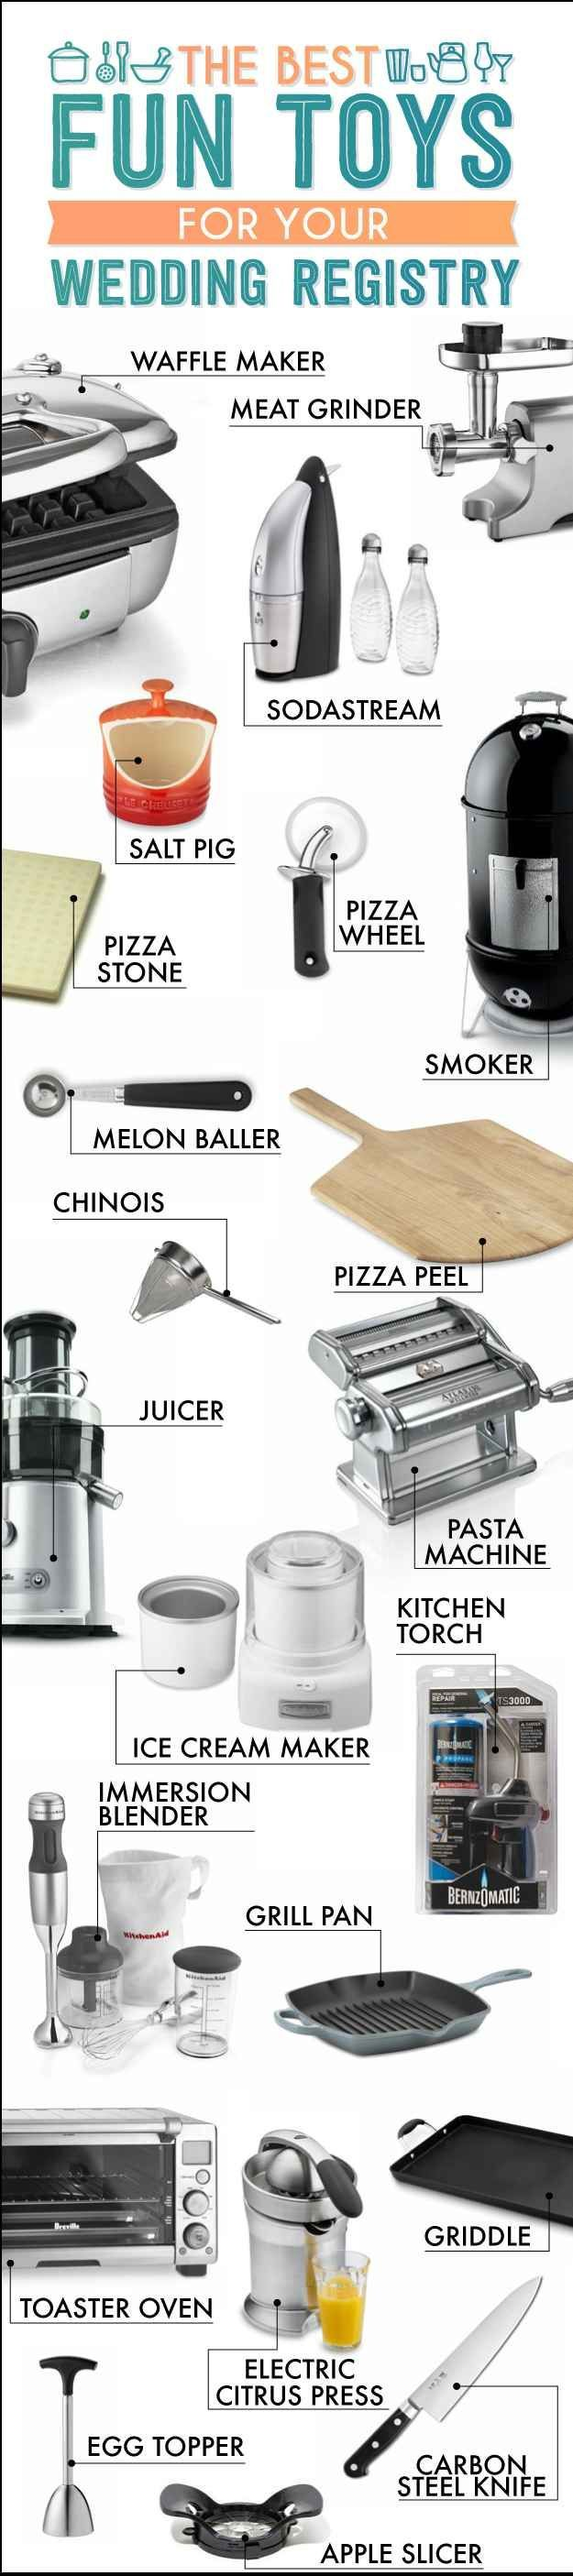 Uncategorized Basic Kitchen Appliances 132 best kitchenkitchen utensilsvebs images on pinterest the essential wedding registry checklist for your kitchen